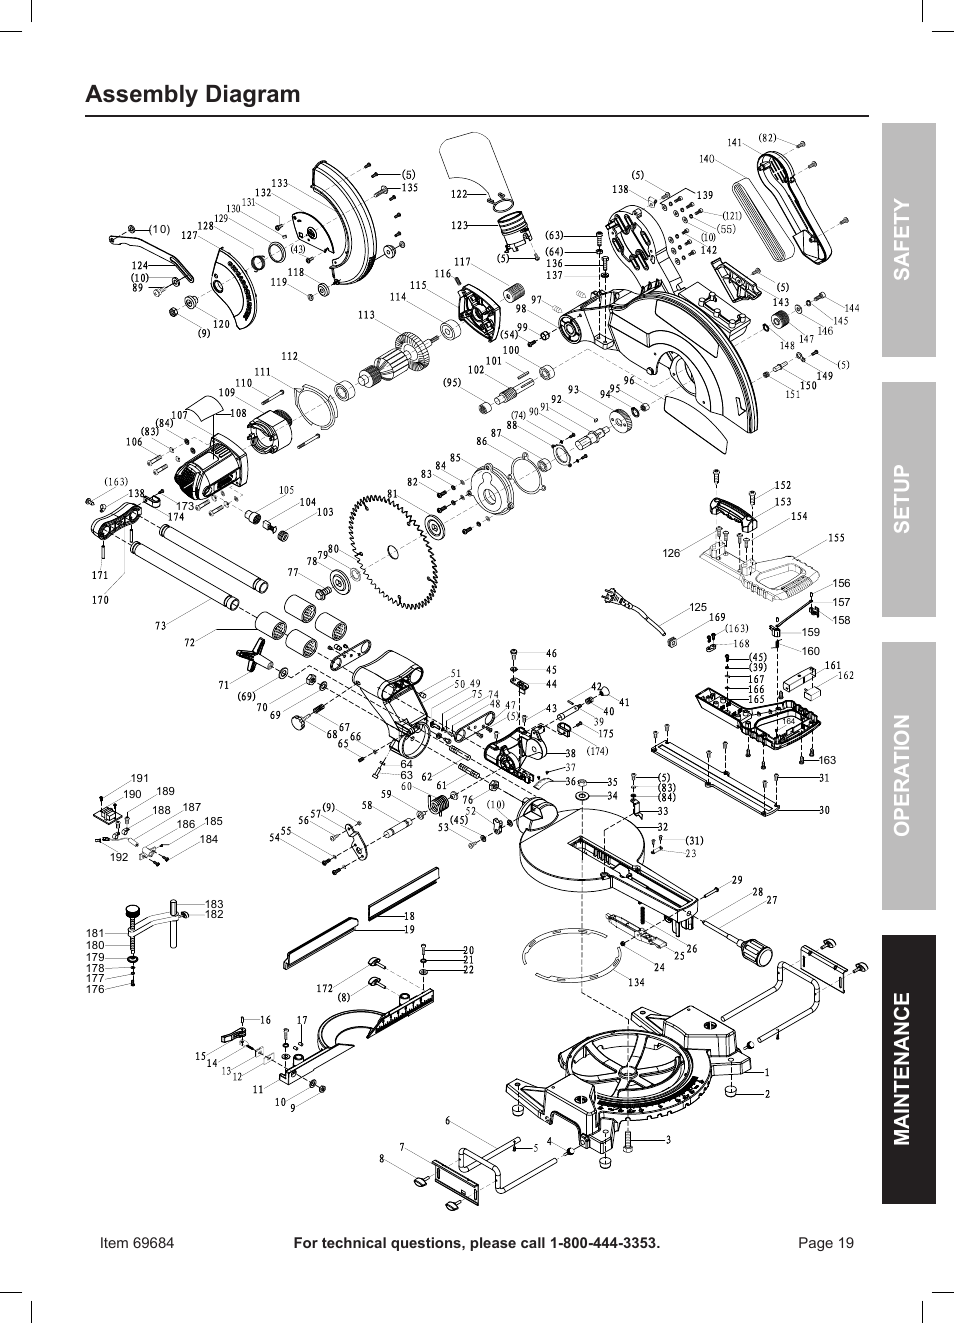 Assembly    diagram     Safety opera tion maintenance setup      Chicago       Electric    Power Tools 12  DOUBLE